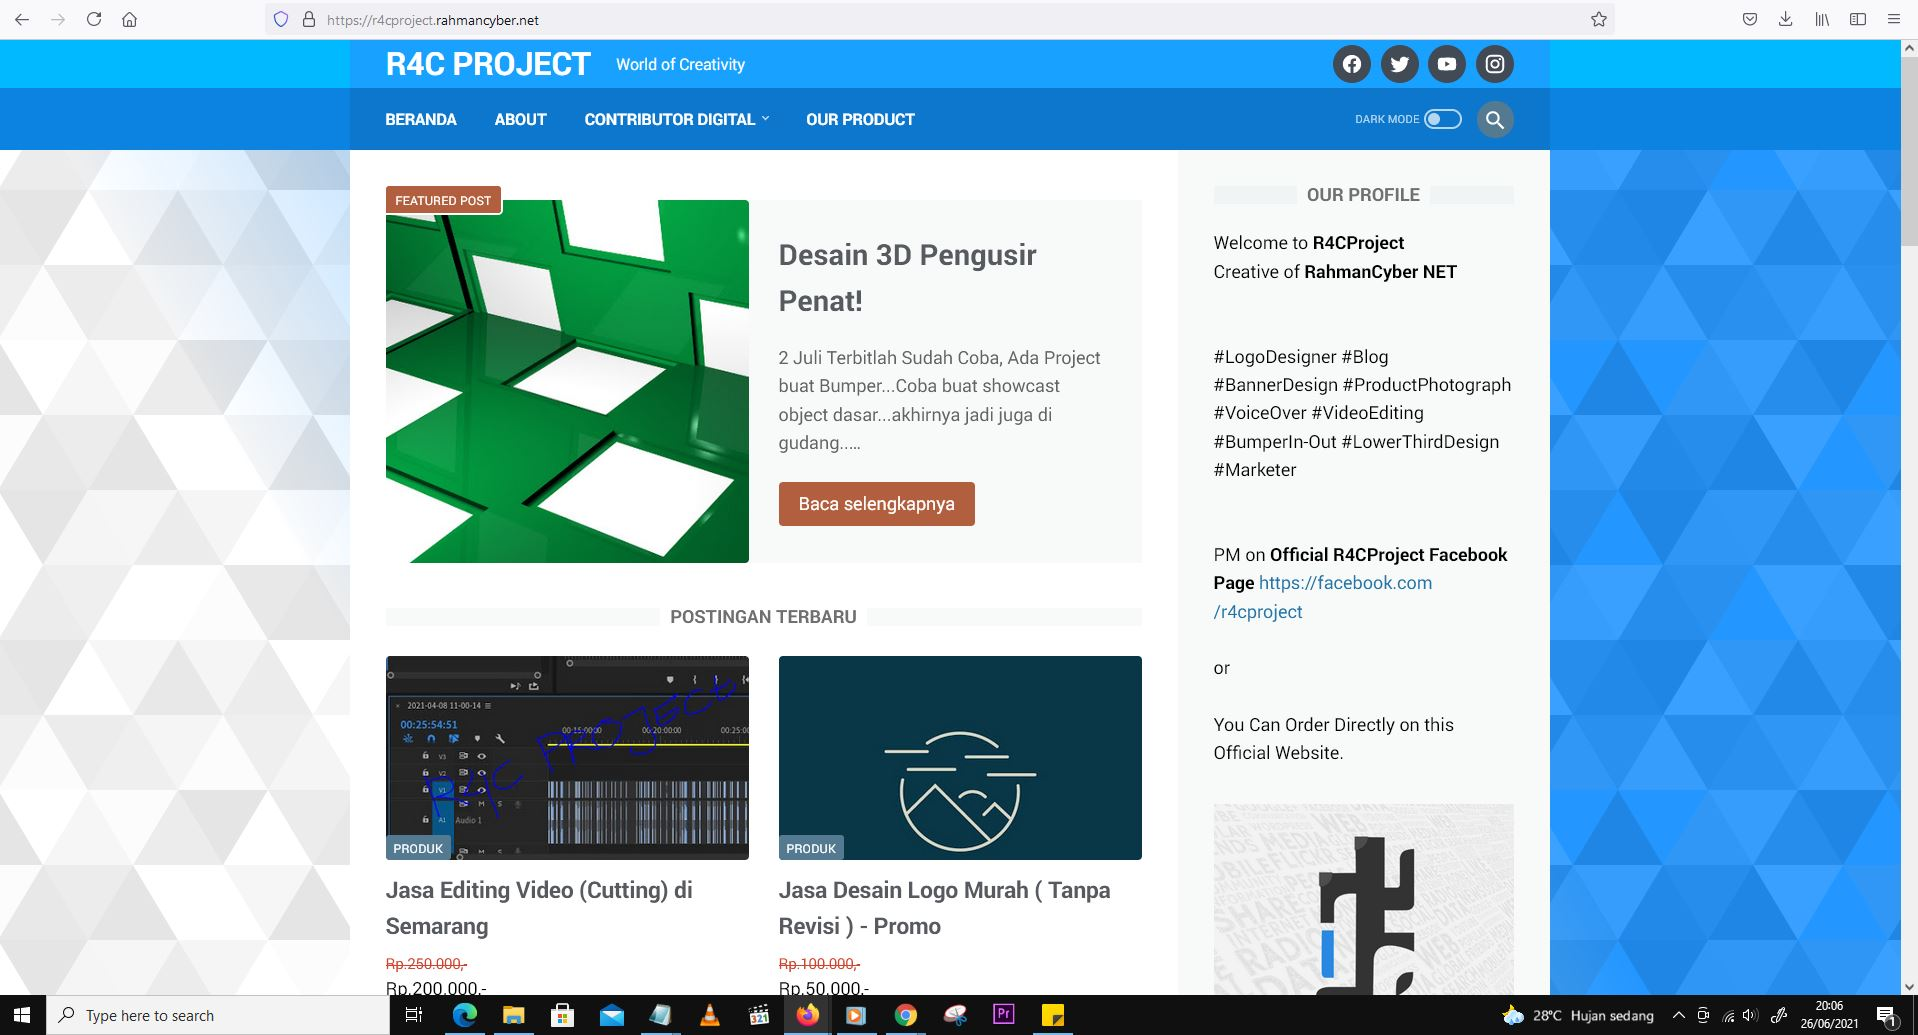 R4CProject Web v1